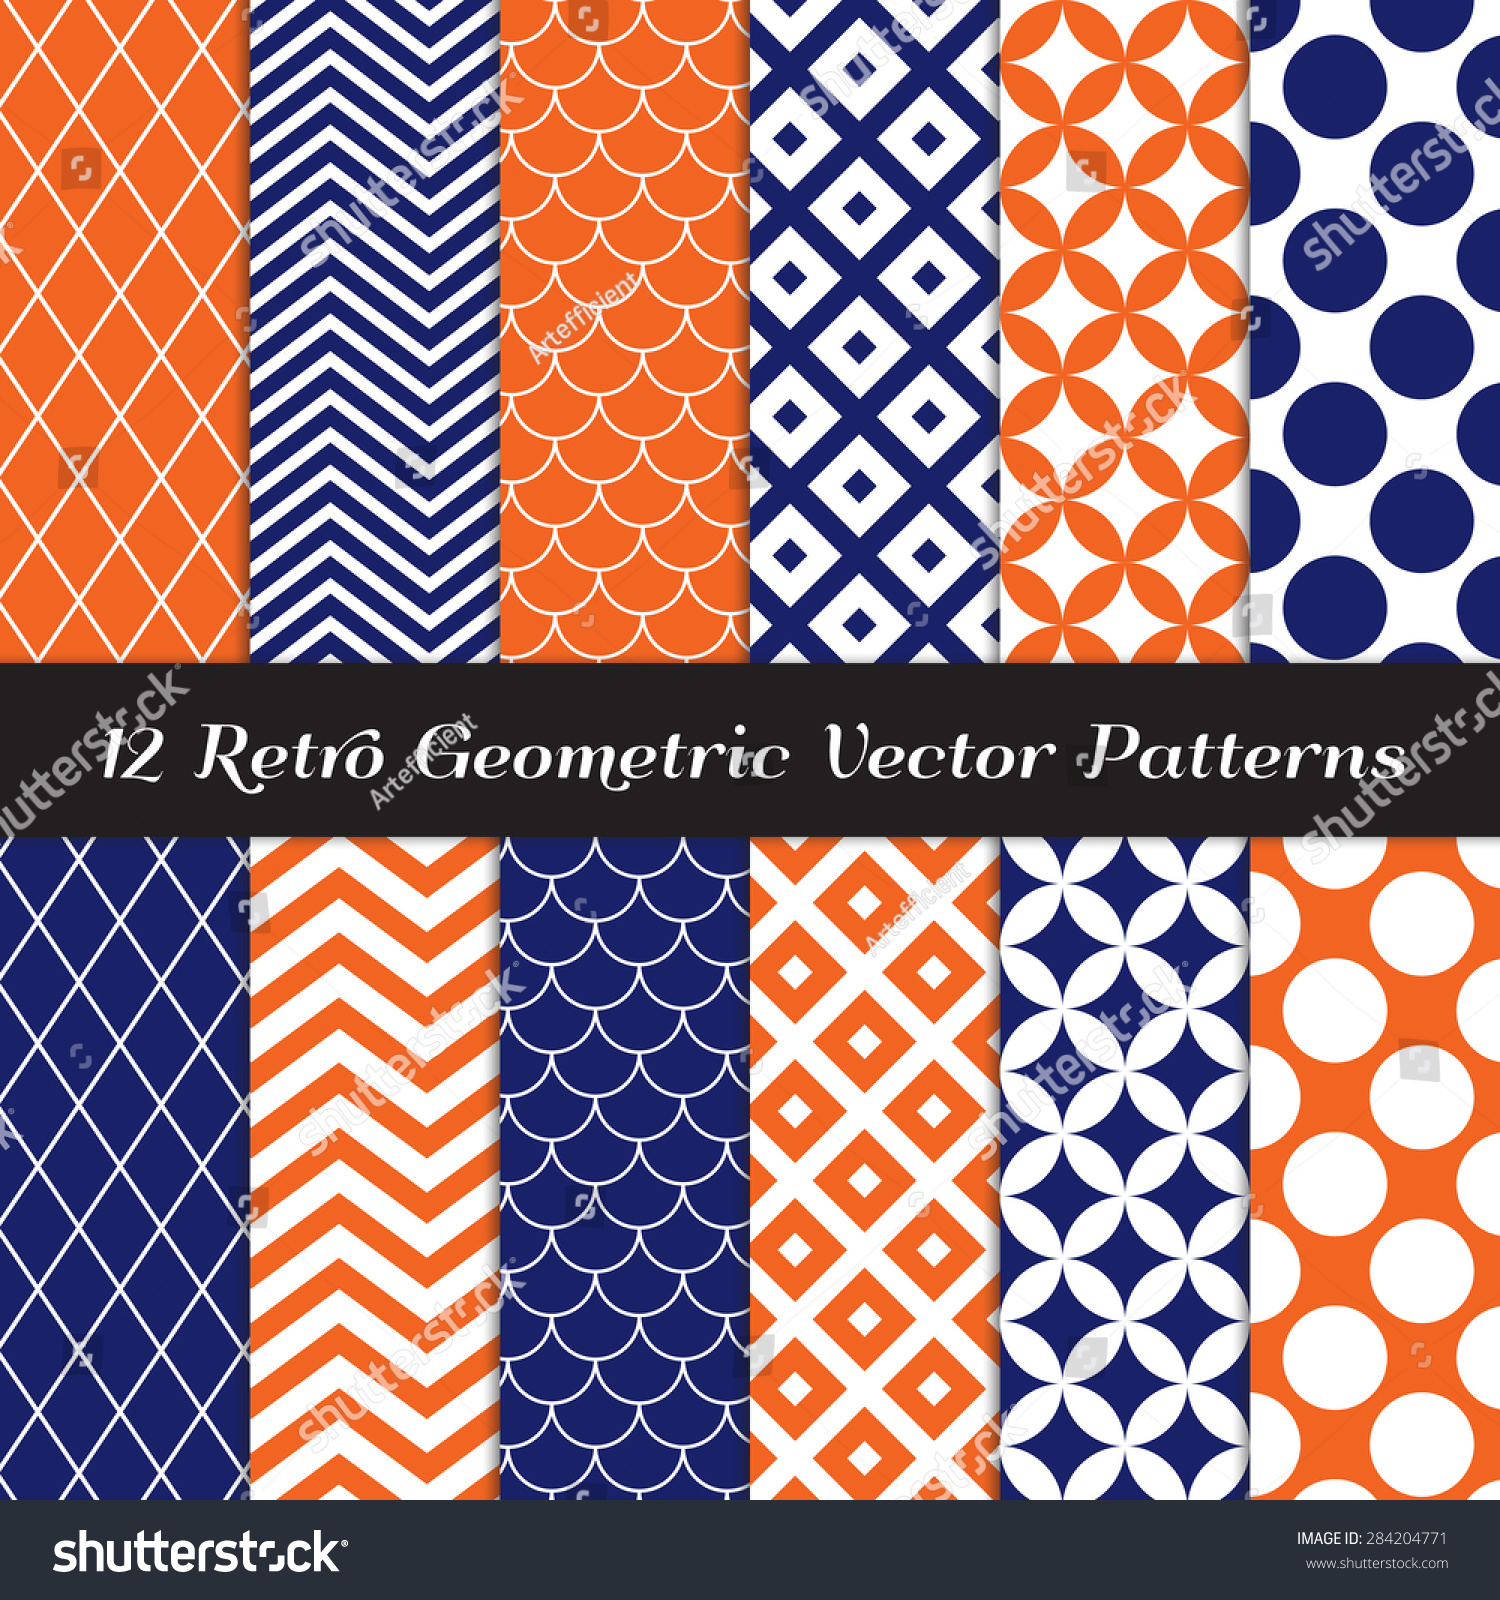 Blue And Orange | stock vector navy blue orange and white retro geometric patterns mod backgrounds in jumbo polka dot diamond 284204771